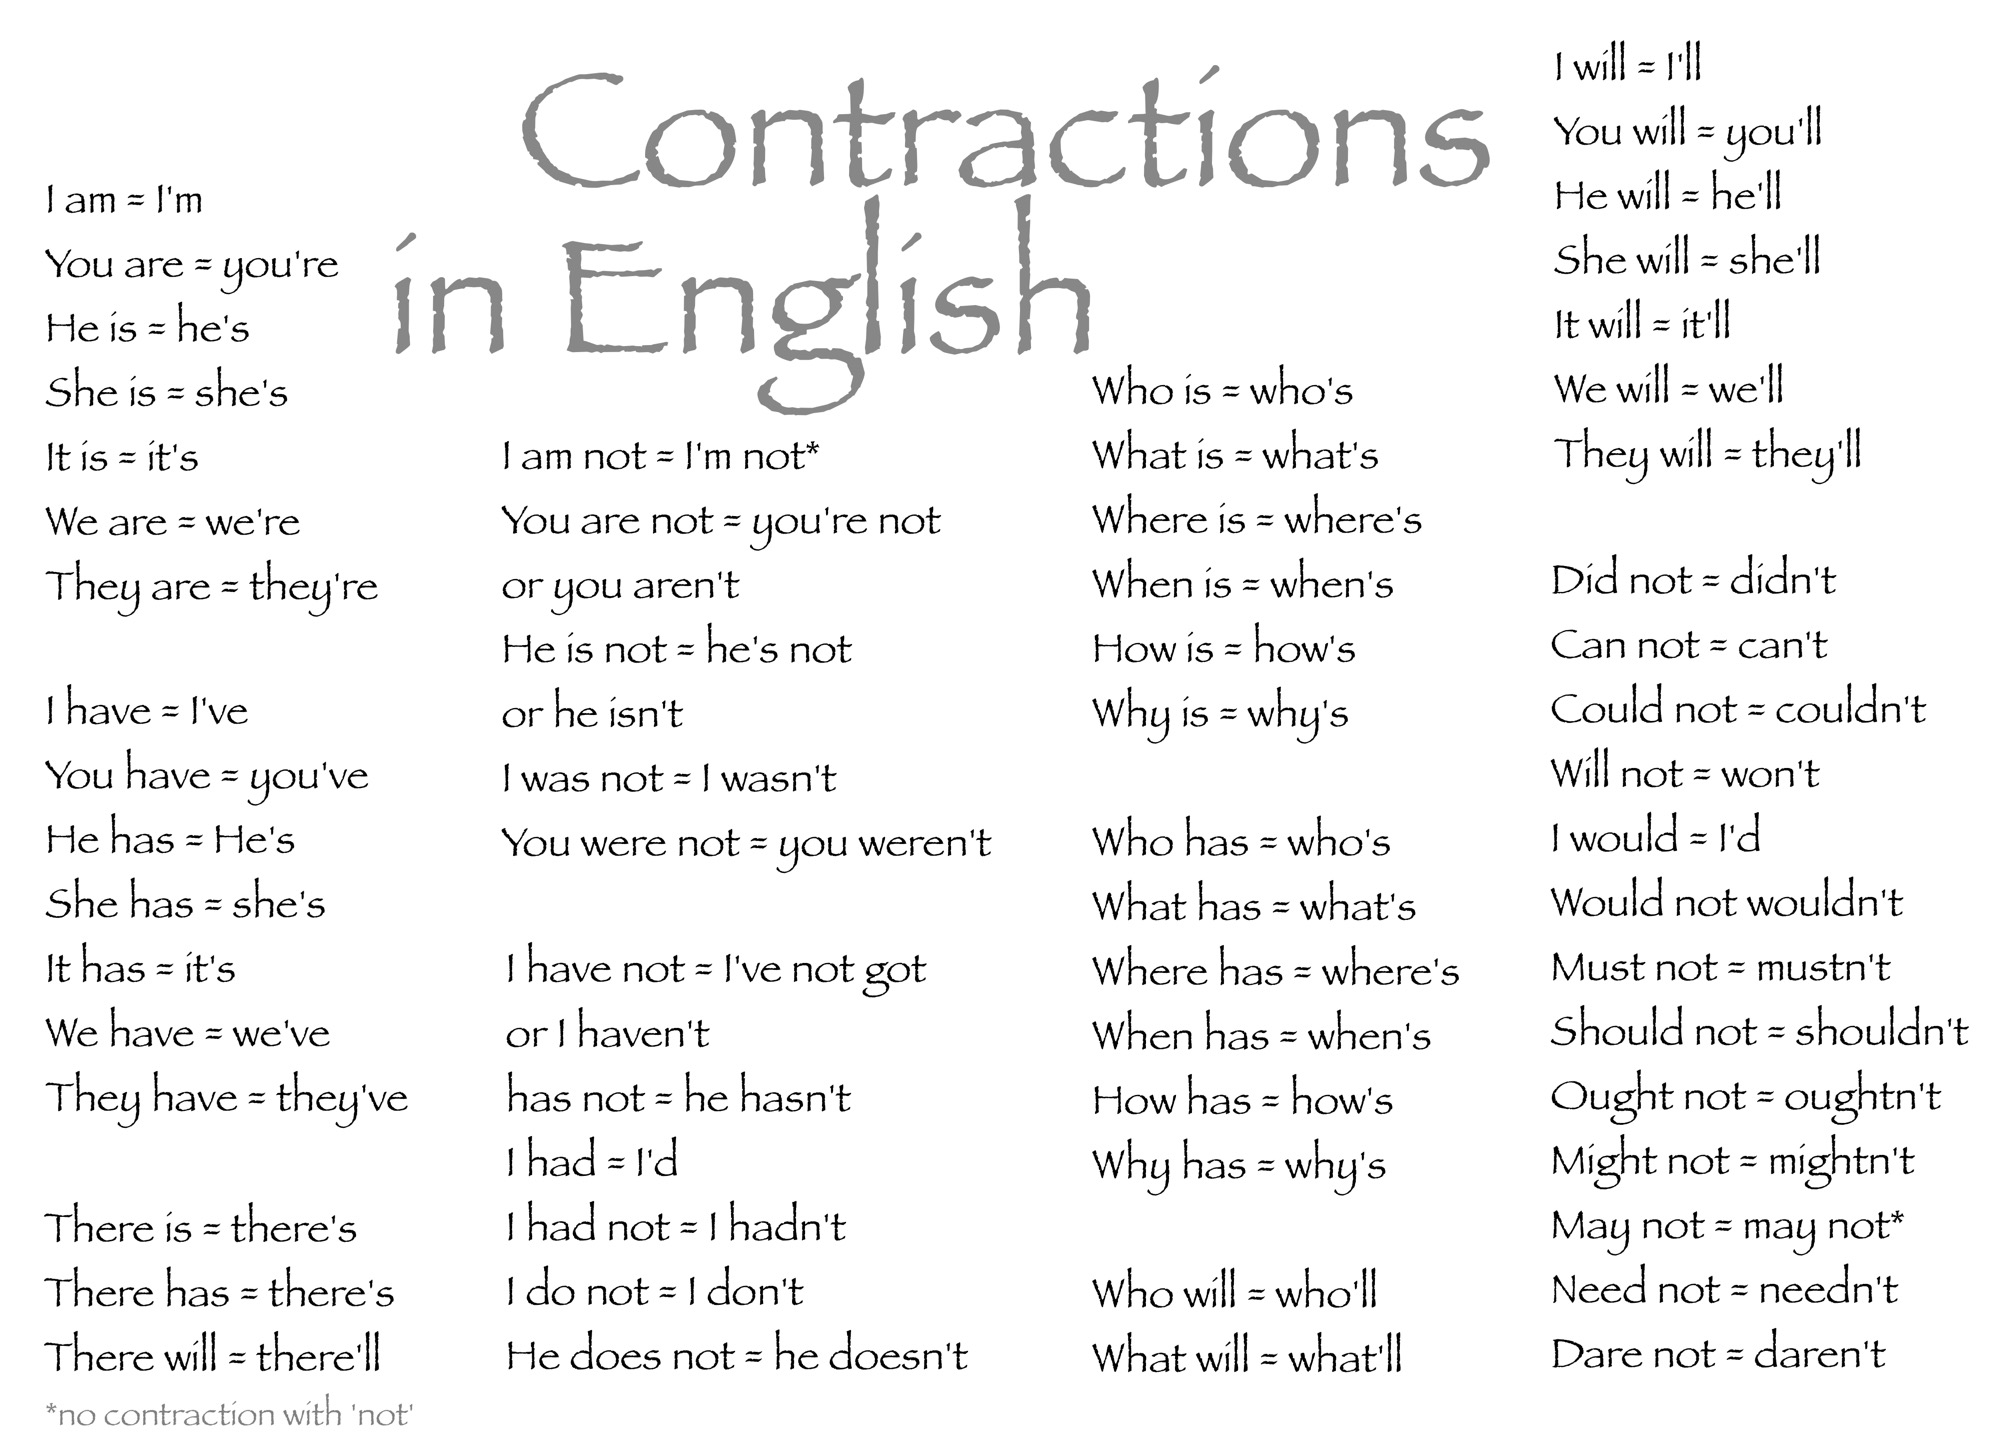 List of contractions in english grammar tips.